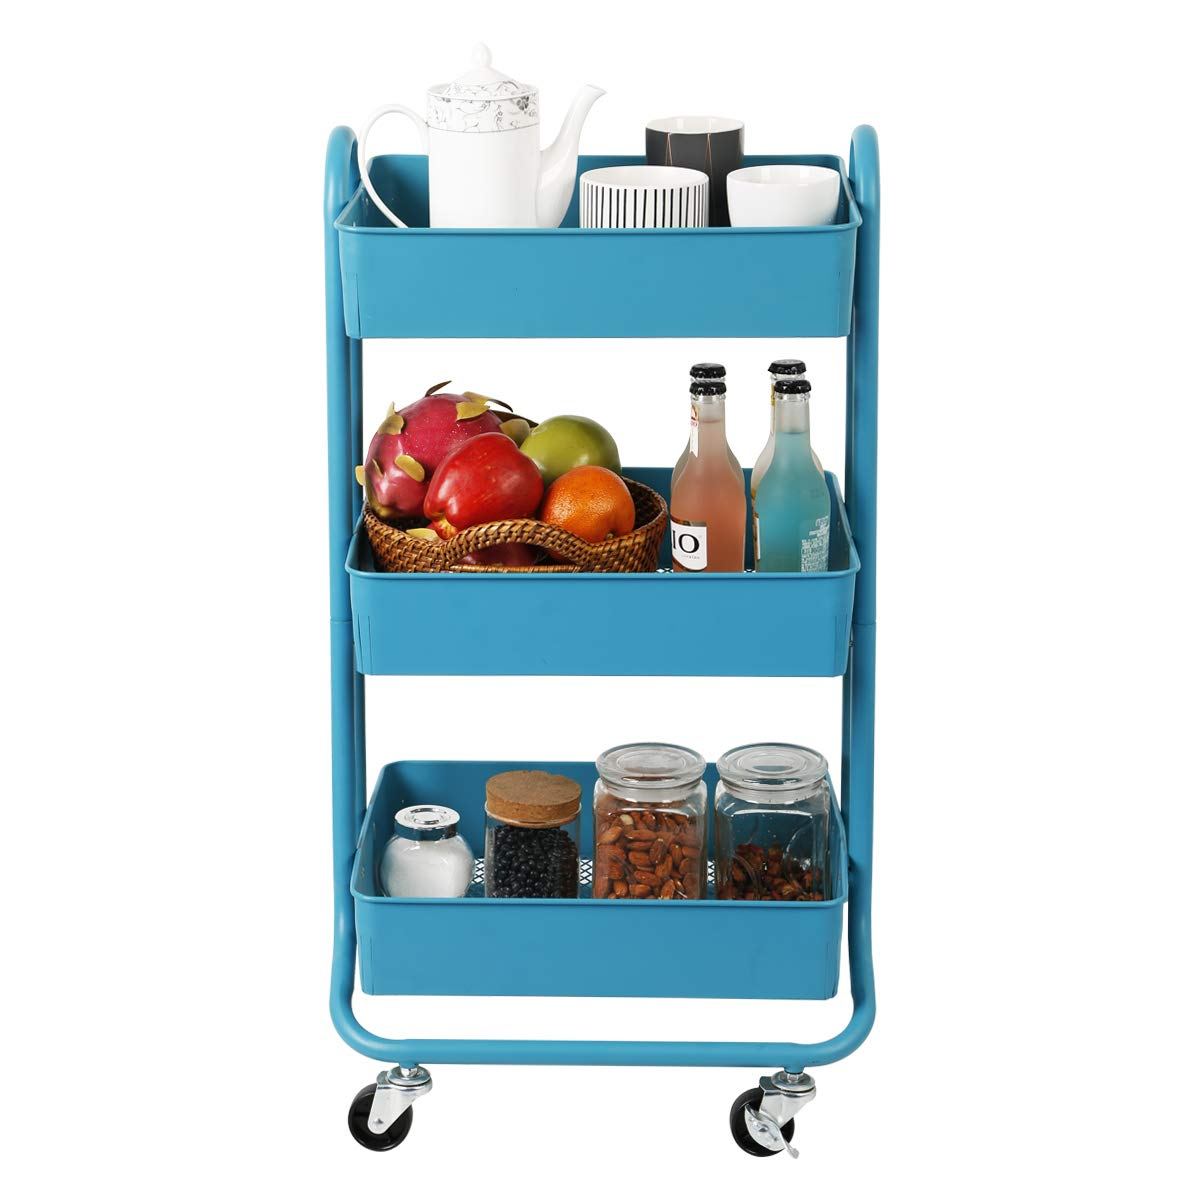 DESIGNA Metal Rolling Storage Cart 3 Tiers Utility Mobile Organization Cart with Handles Suitable for Office Home Kitchen or Outdoor, Turquoise by DESIGNA